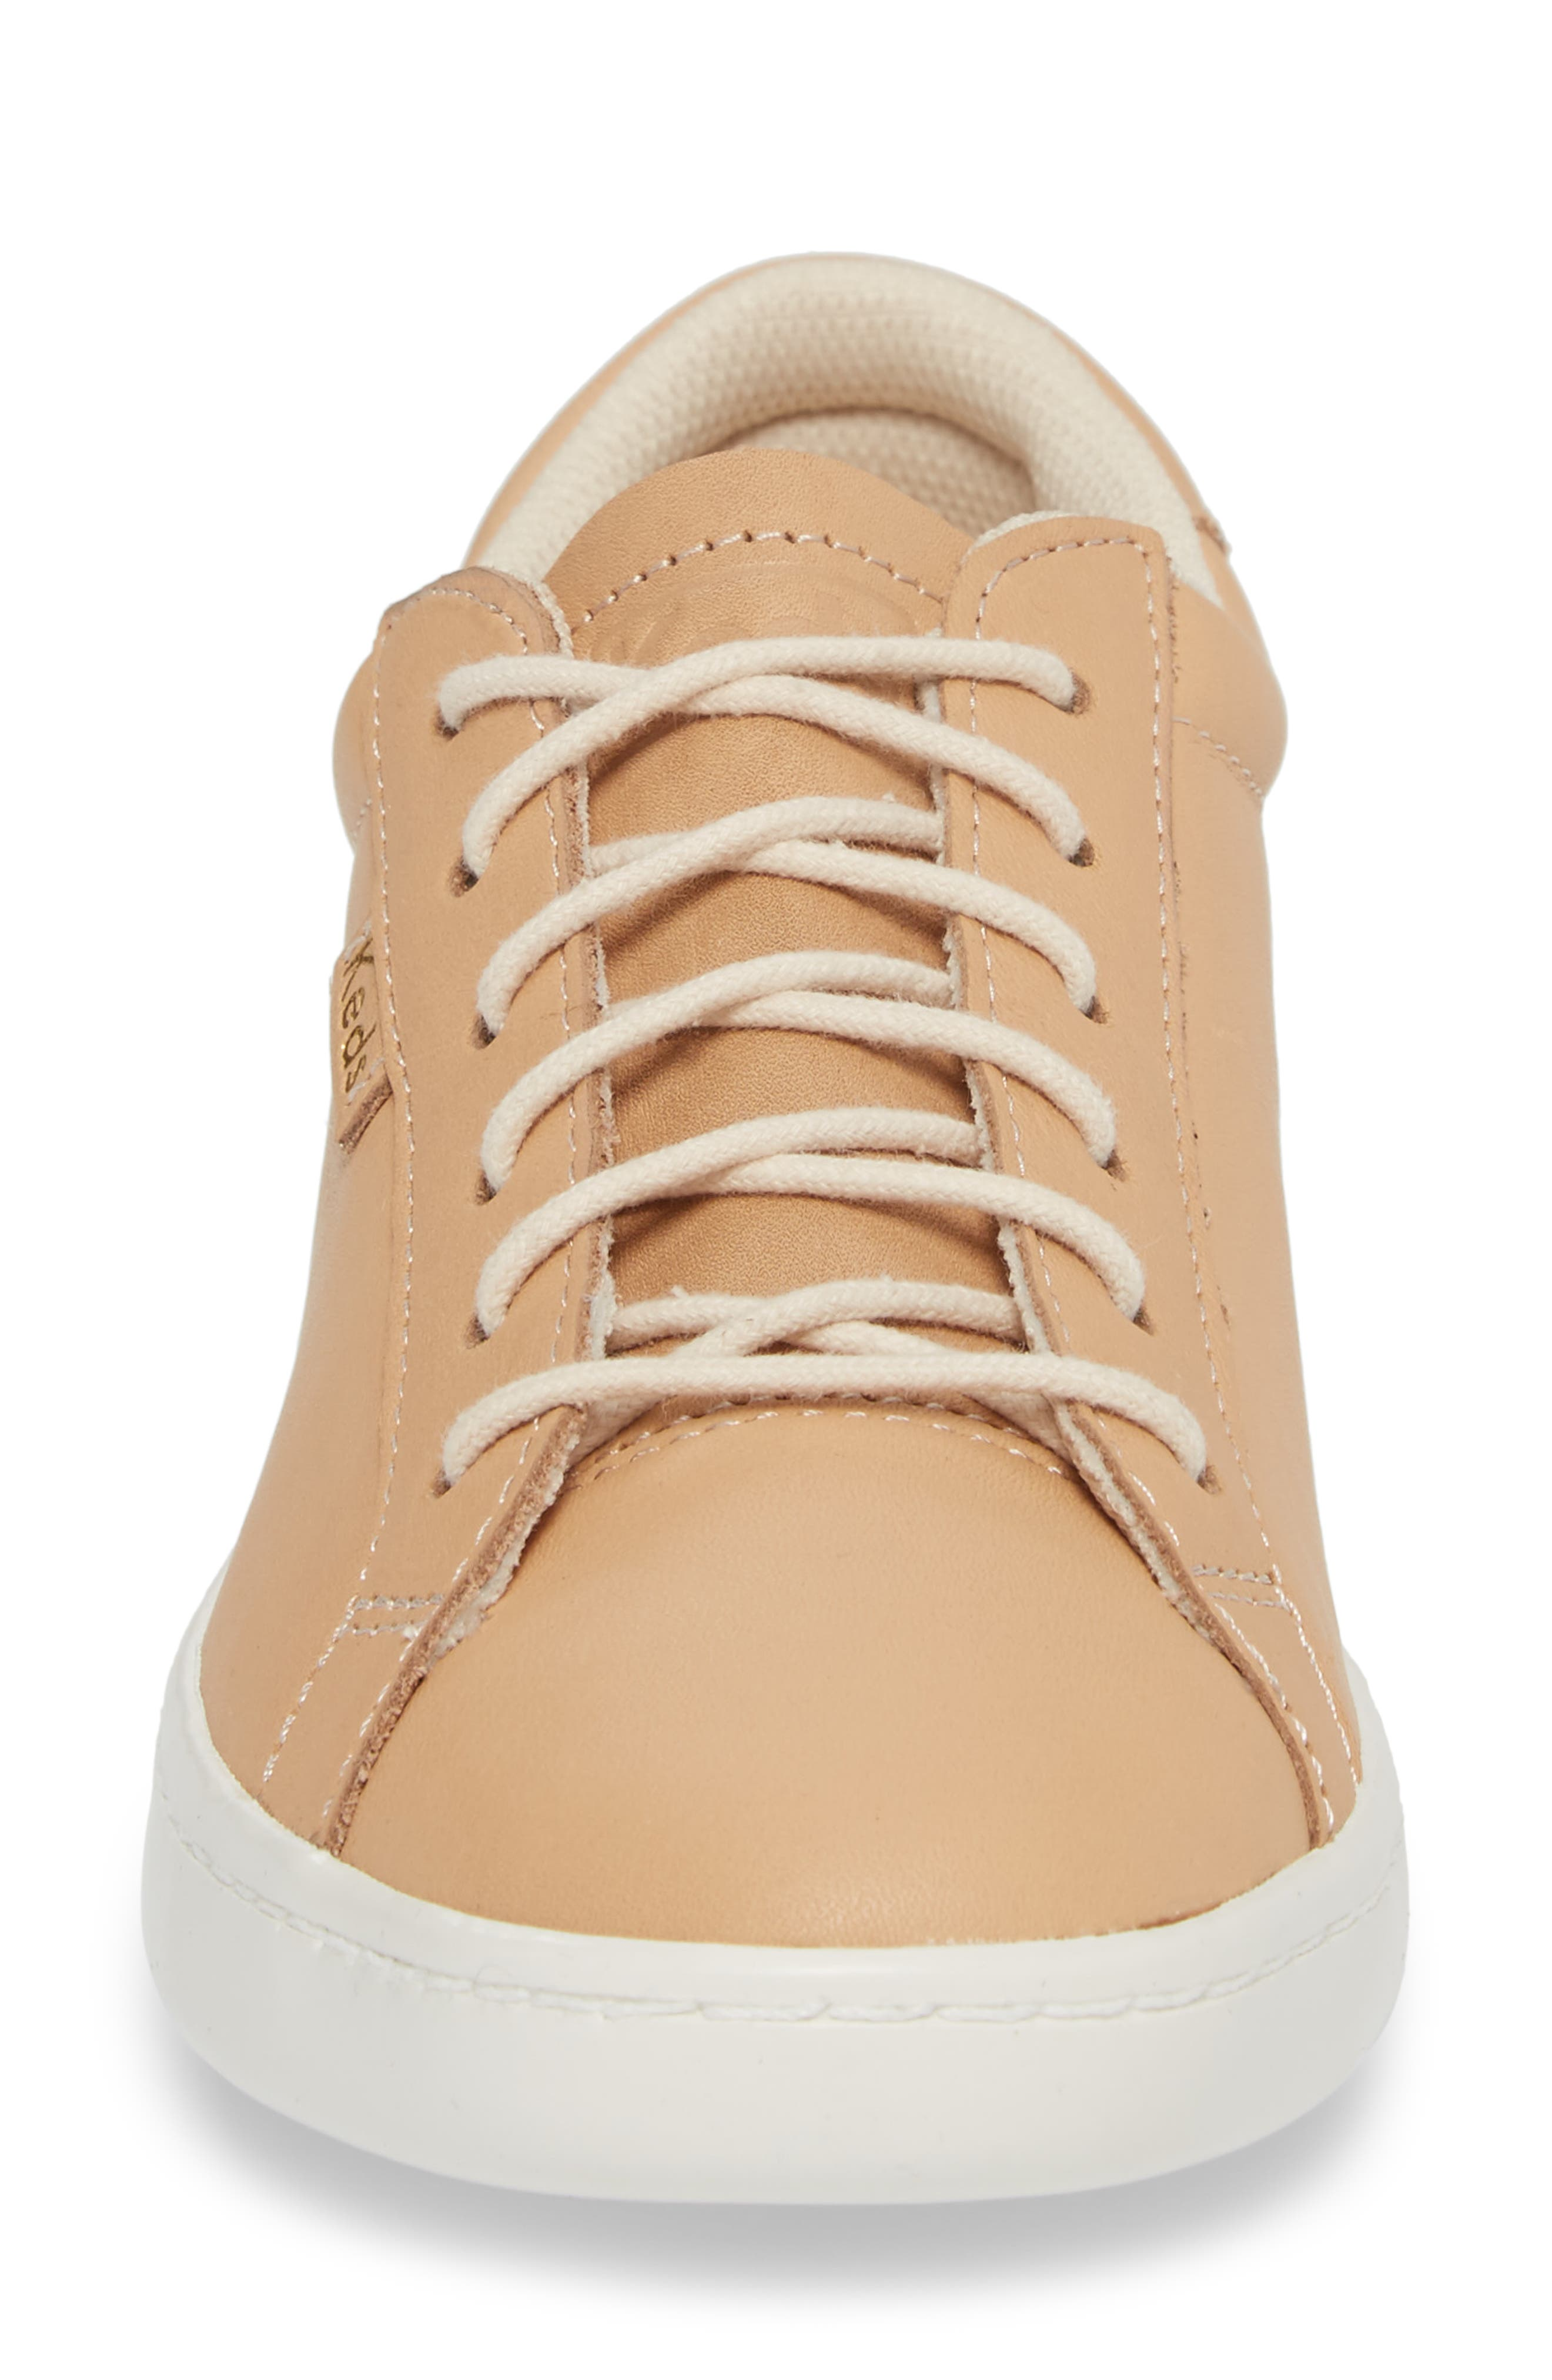 Ace Leather Sneaker,                             Alternate thumbnail 4, color,                             Natural